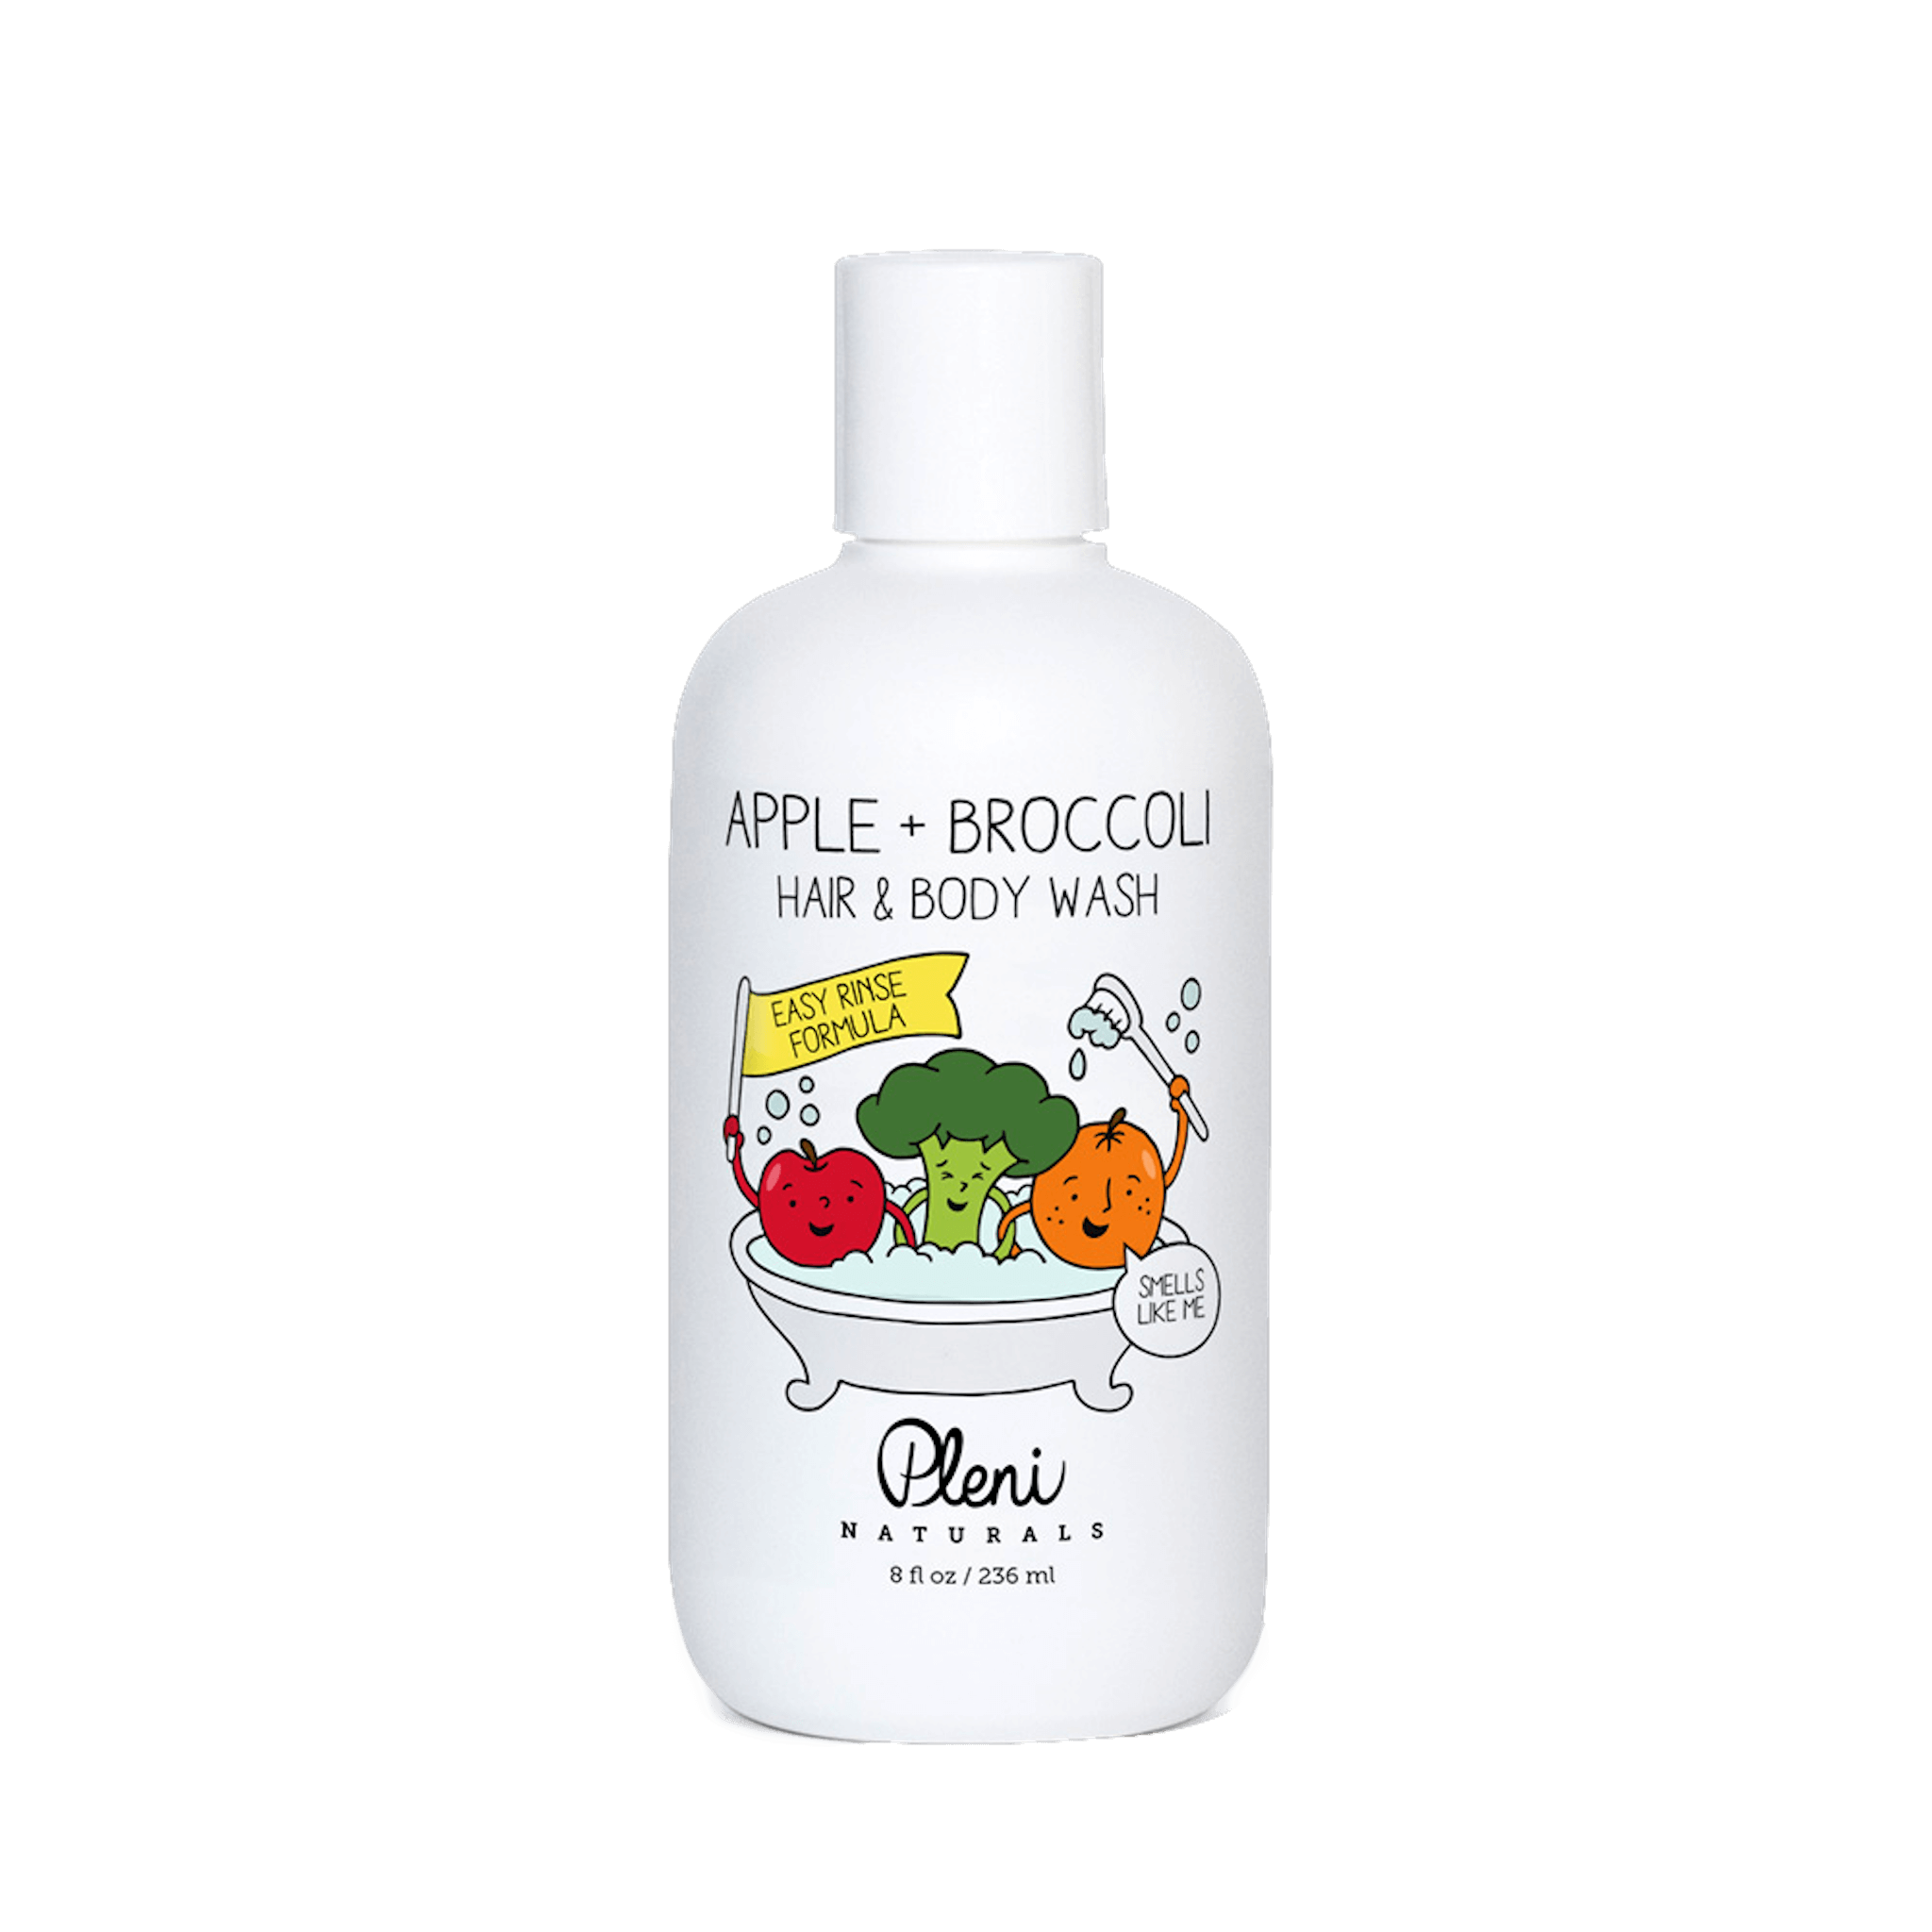 Pleni Naturals - Apple + Broccoli Hair & Body Wash (8 oz)